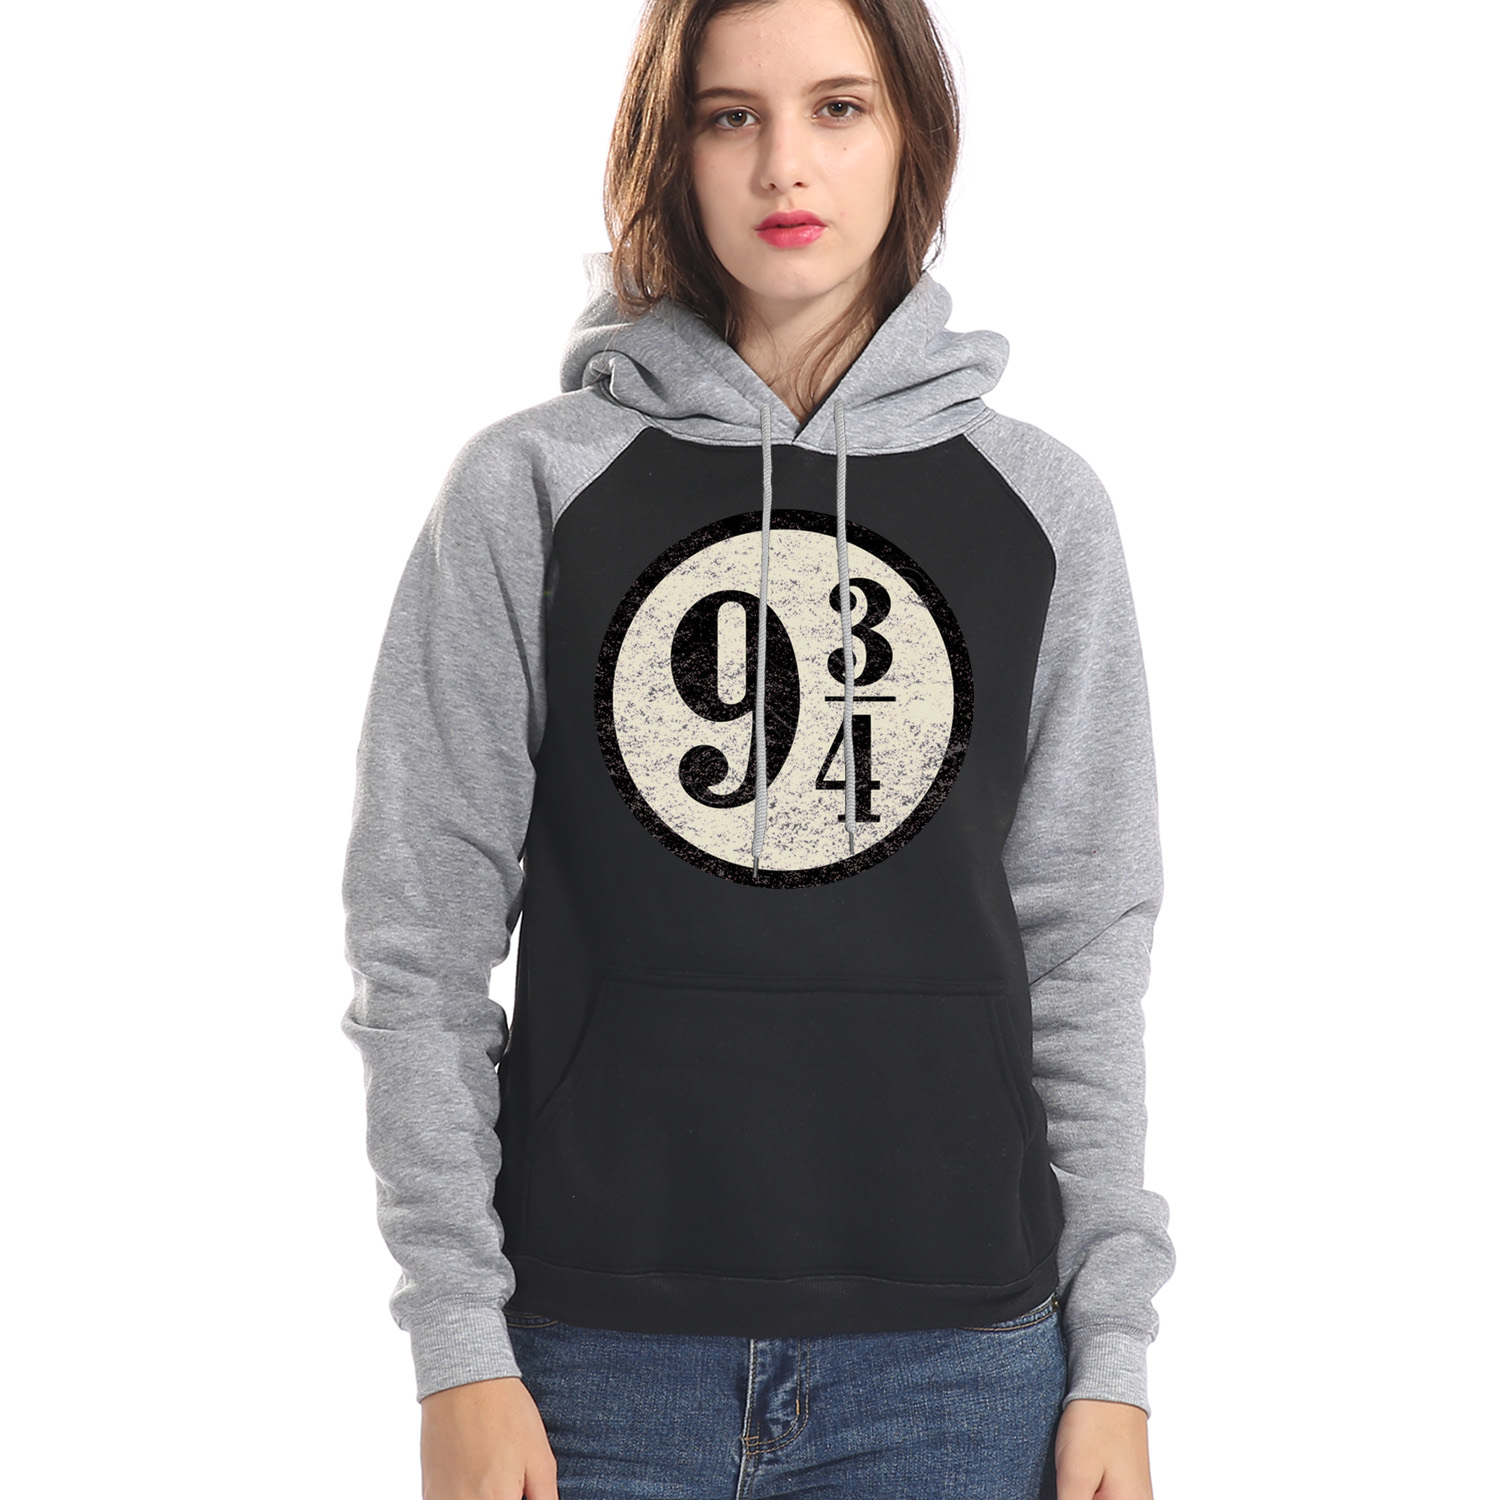 Platform 9-3/4 Hogwarts Hoodies Women Sweatshirts Vintage Platform Nine And Three Quarters Raglan Hooded Sweatshirts Pullover